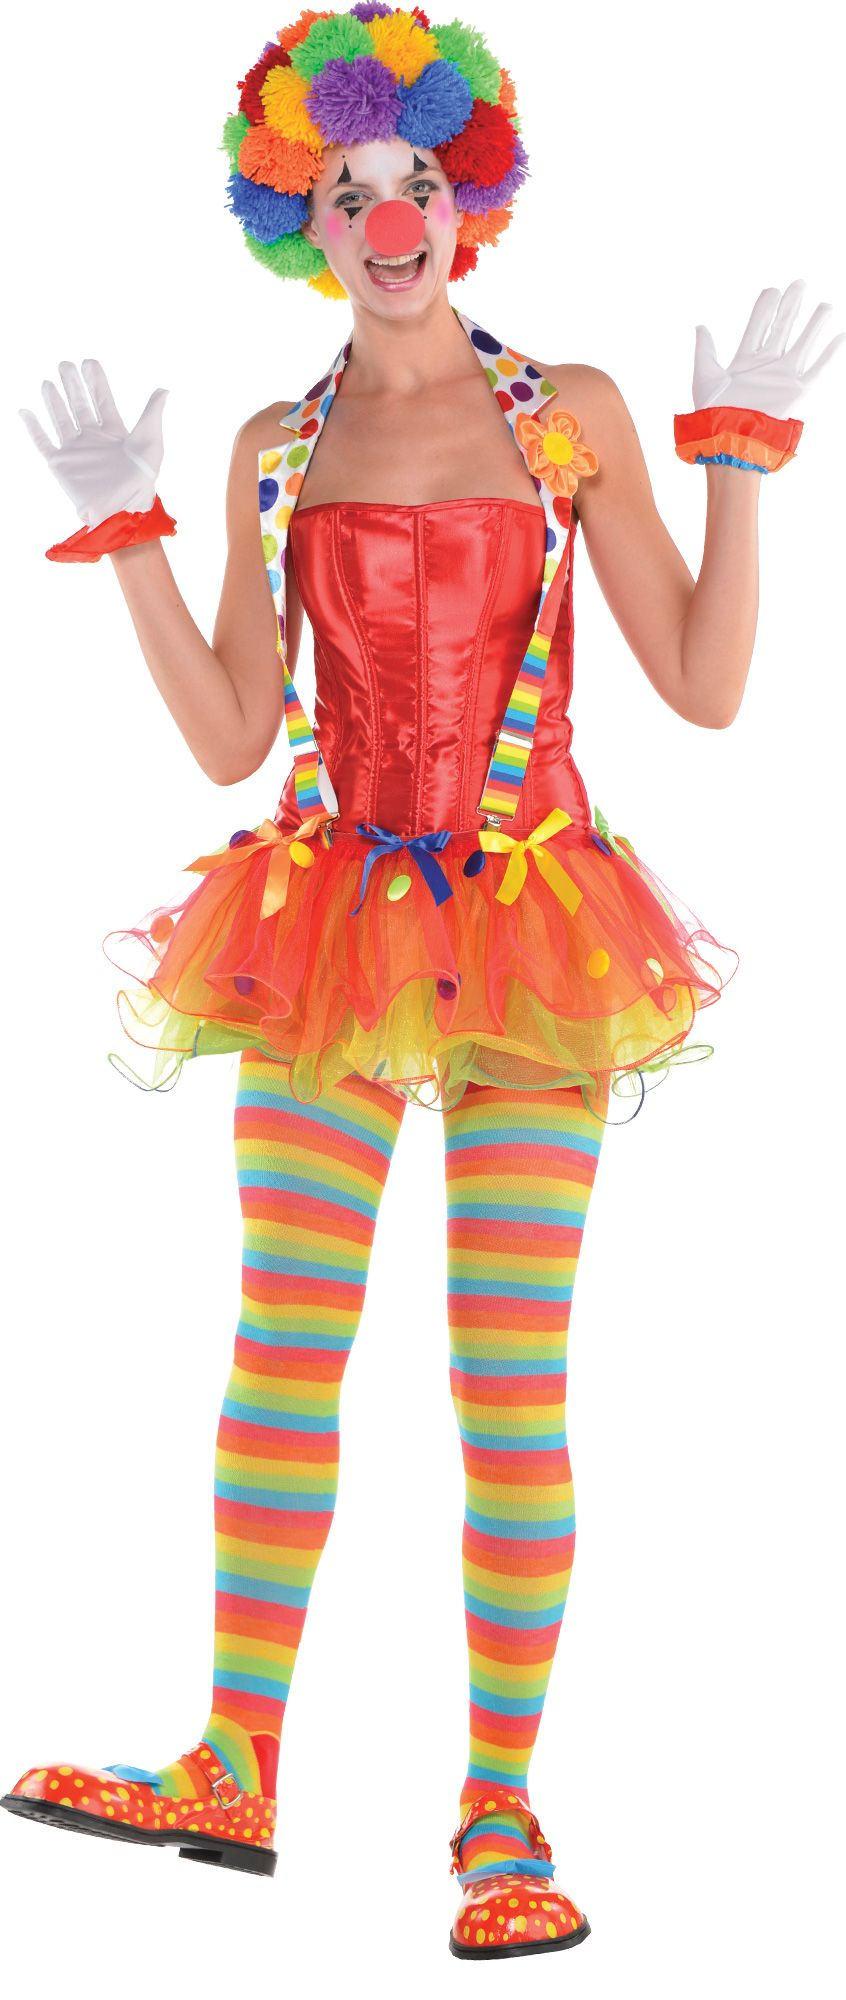 Create Your Look - Women's Clown